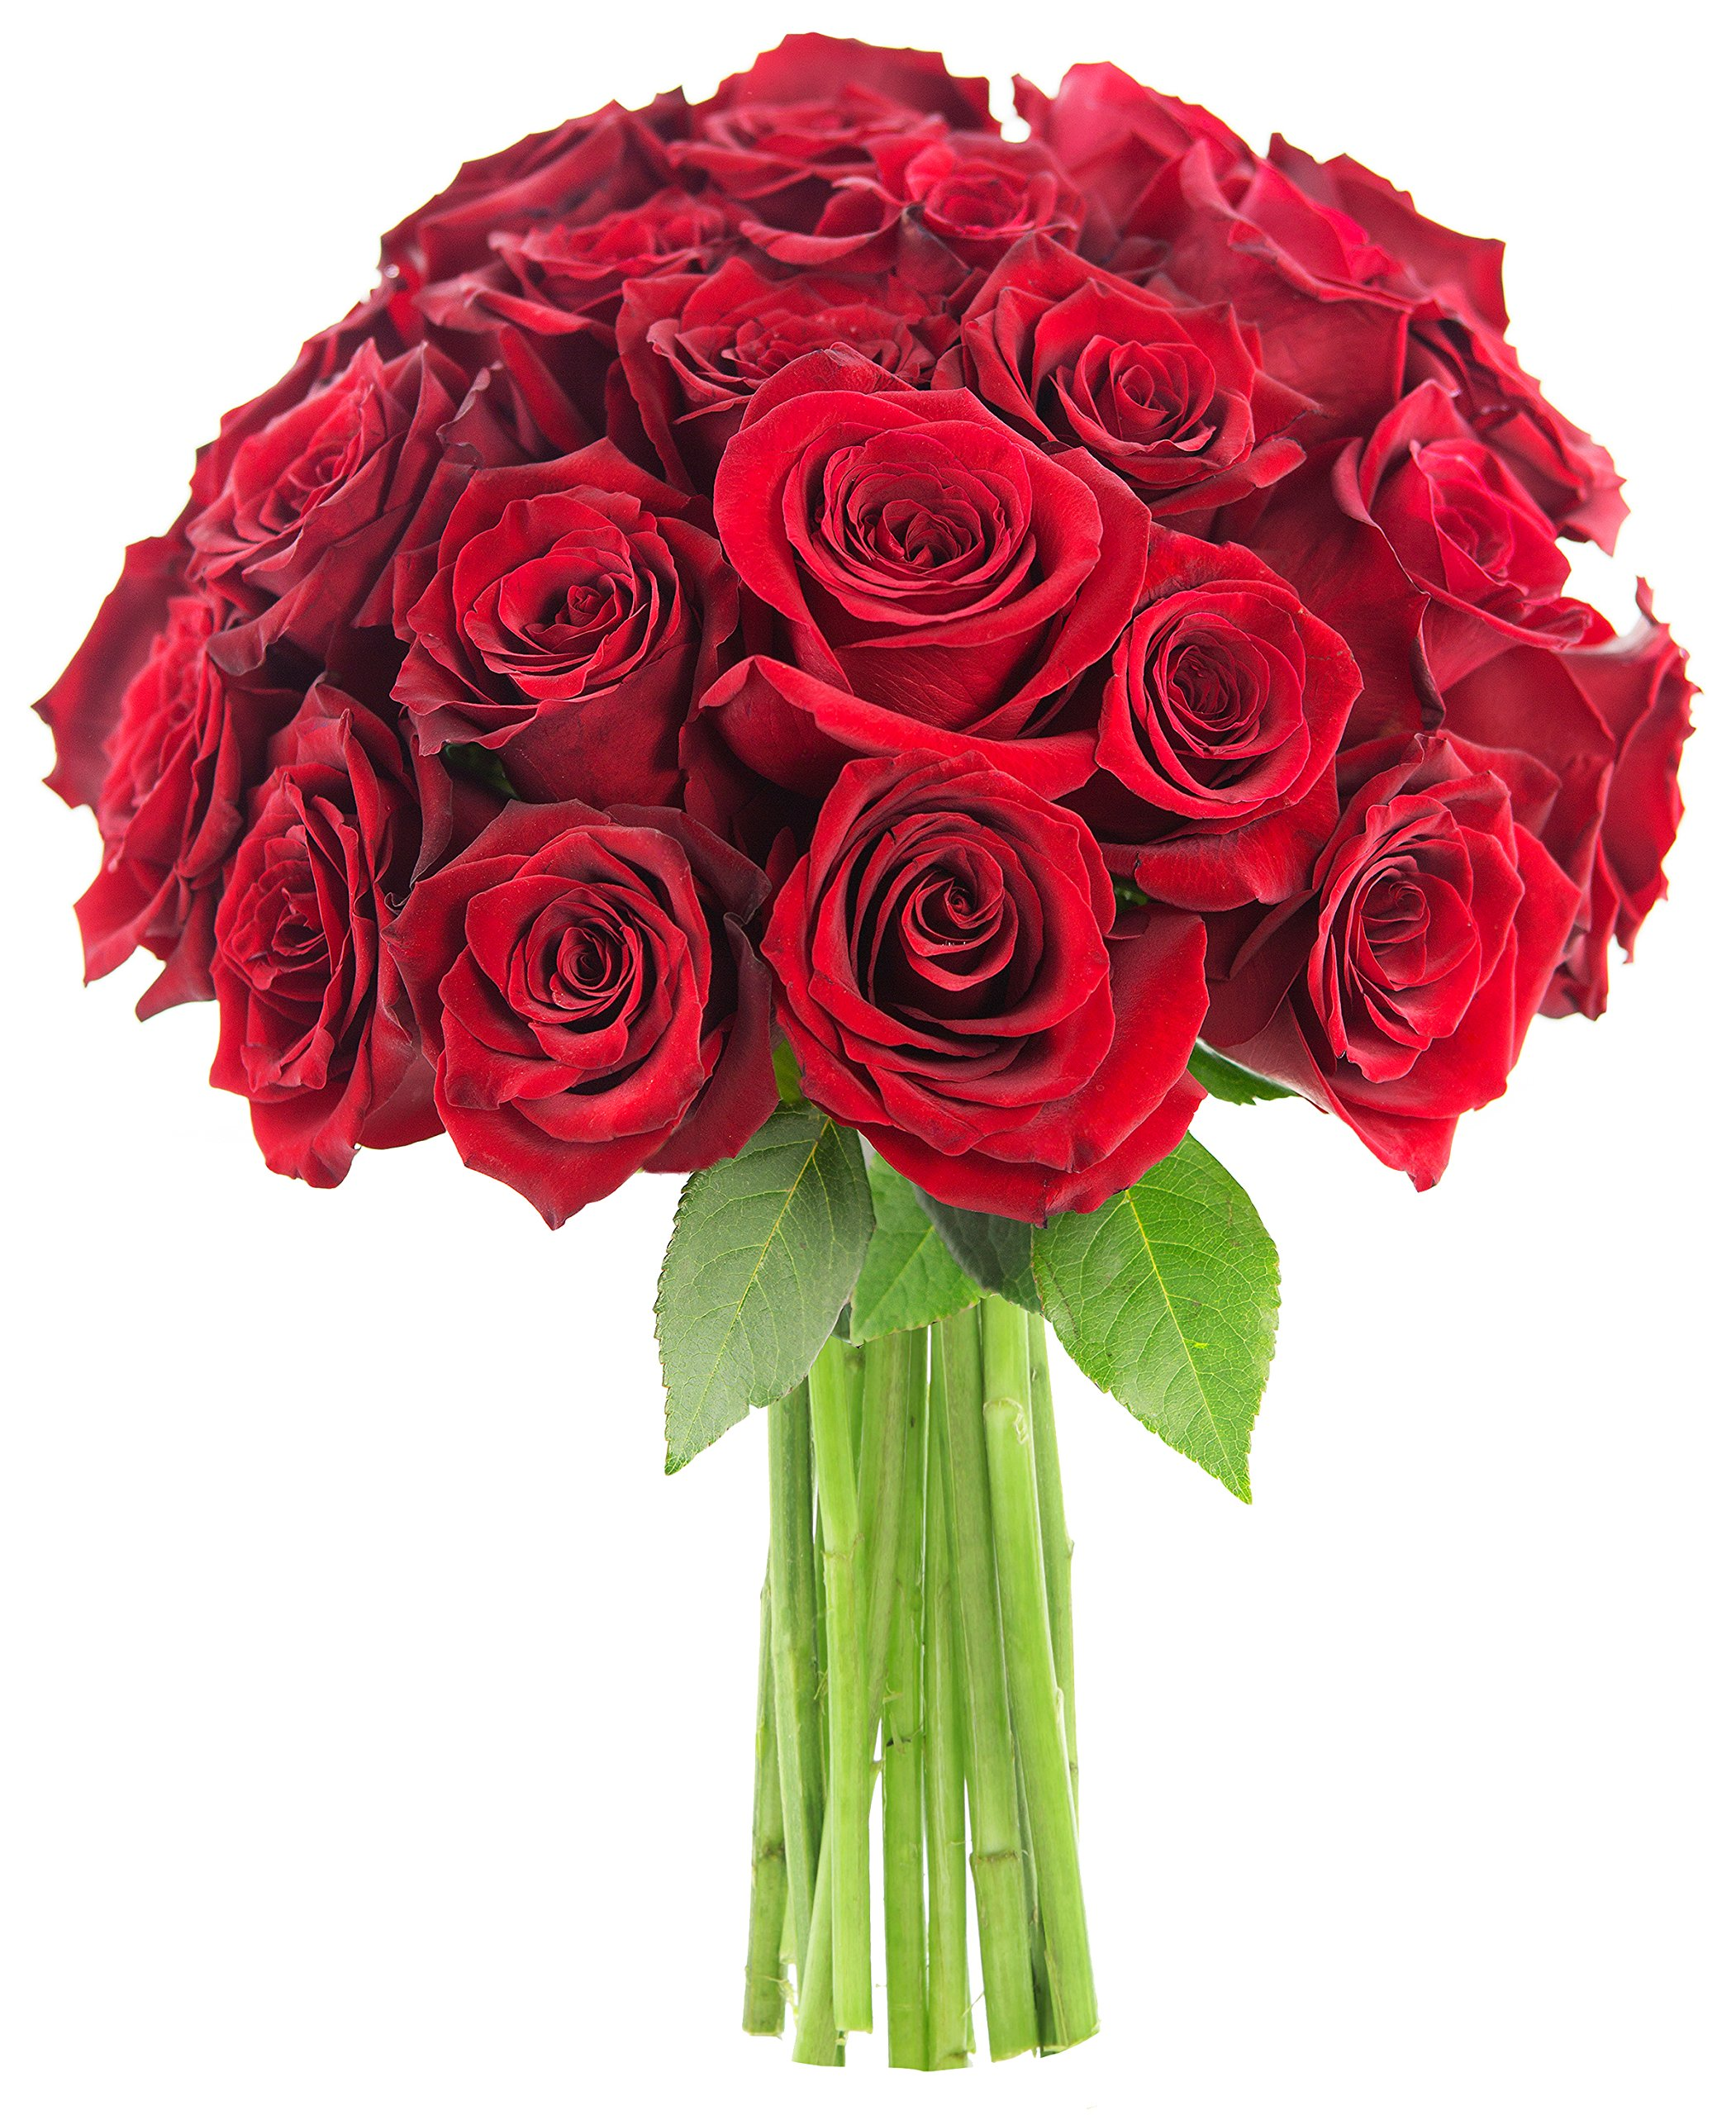 Valentine's Farm Fresh Bouquet of 25 Romantic Red Roses - KaBloom's Natural-State Collection